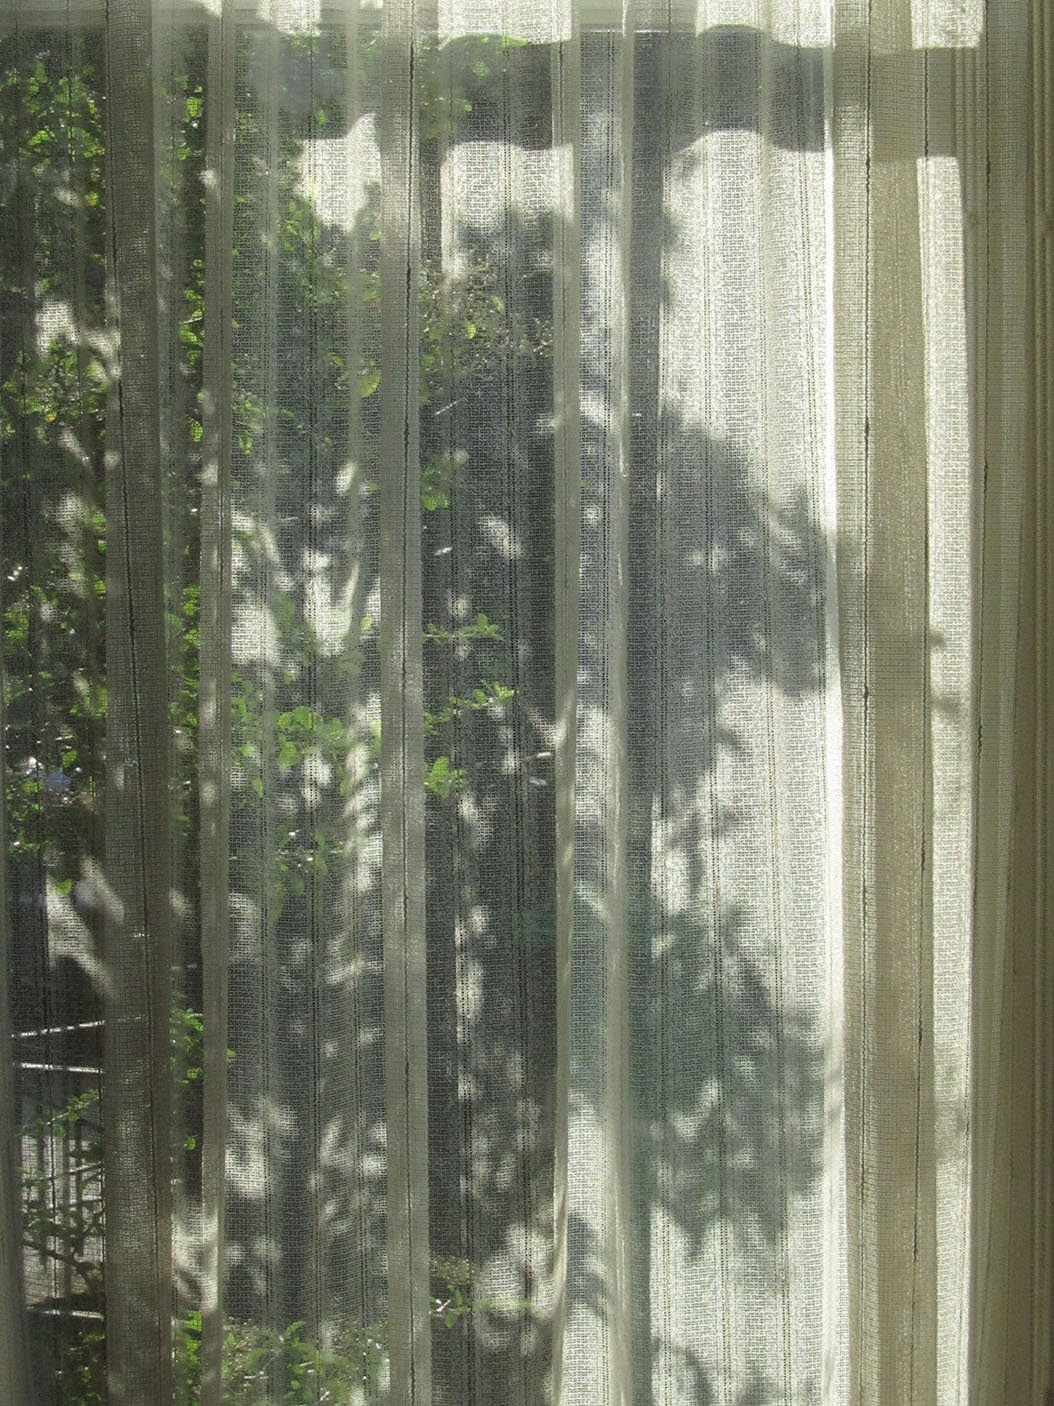 shadow of a bush in the window